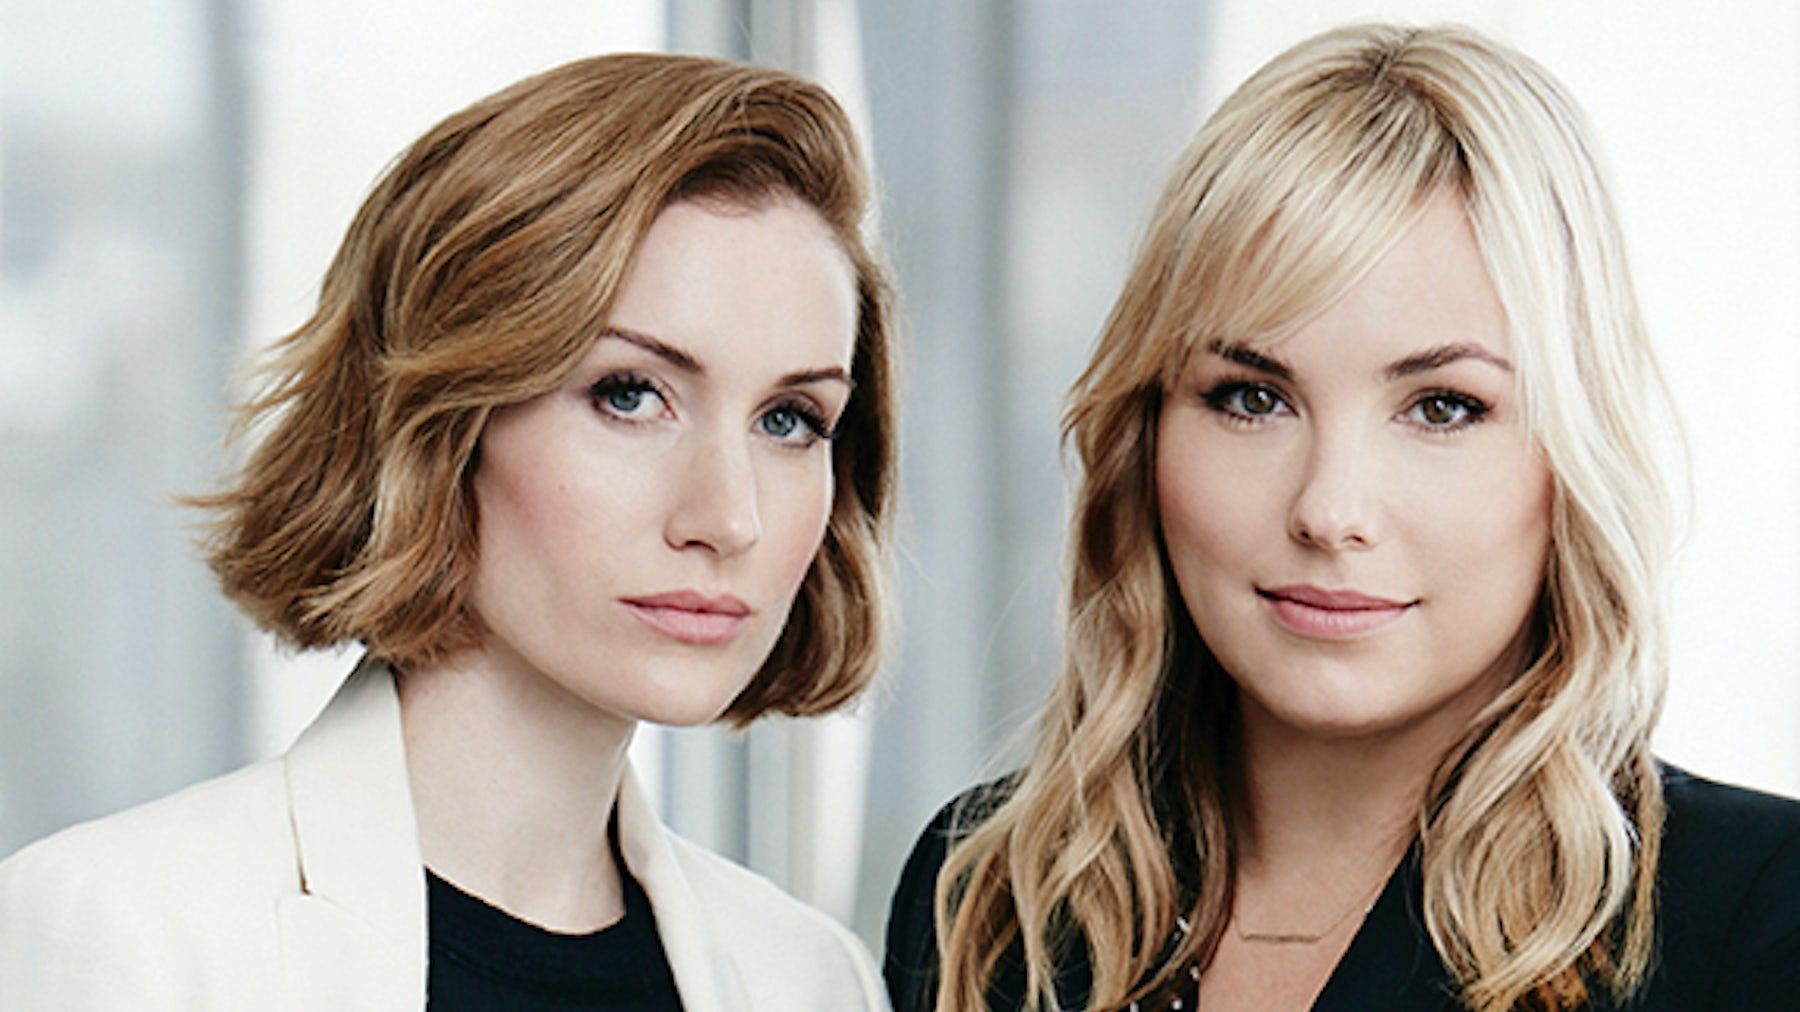 (L-R) Katherine Power and Hillary Kerr | Source: Courtesy